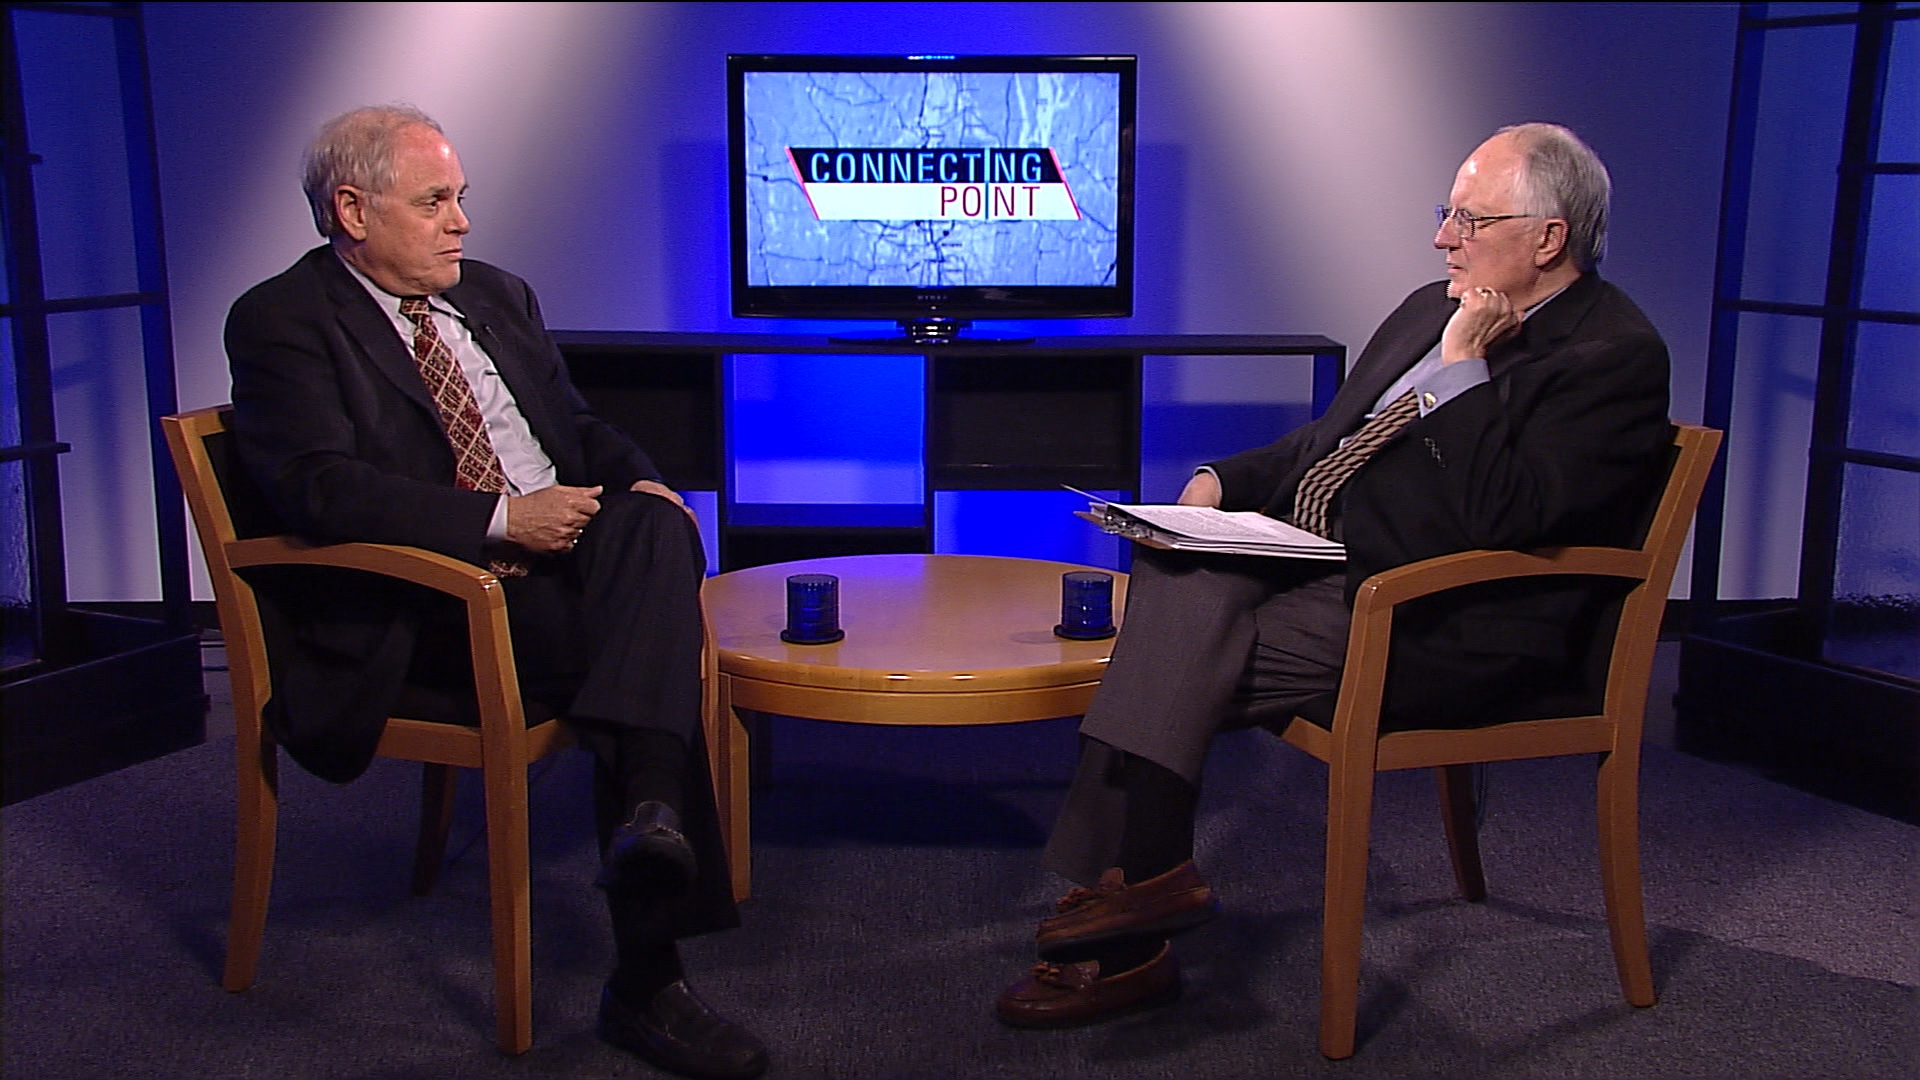 ACLU Attorney Bill Newman discusses obstruction of justice questions about the firing of FBI Director James Comey, and other Trump White House headlines.